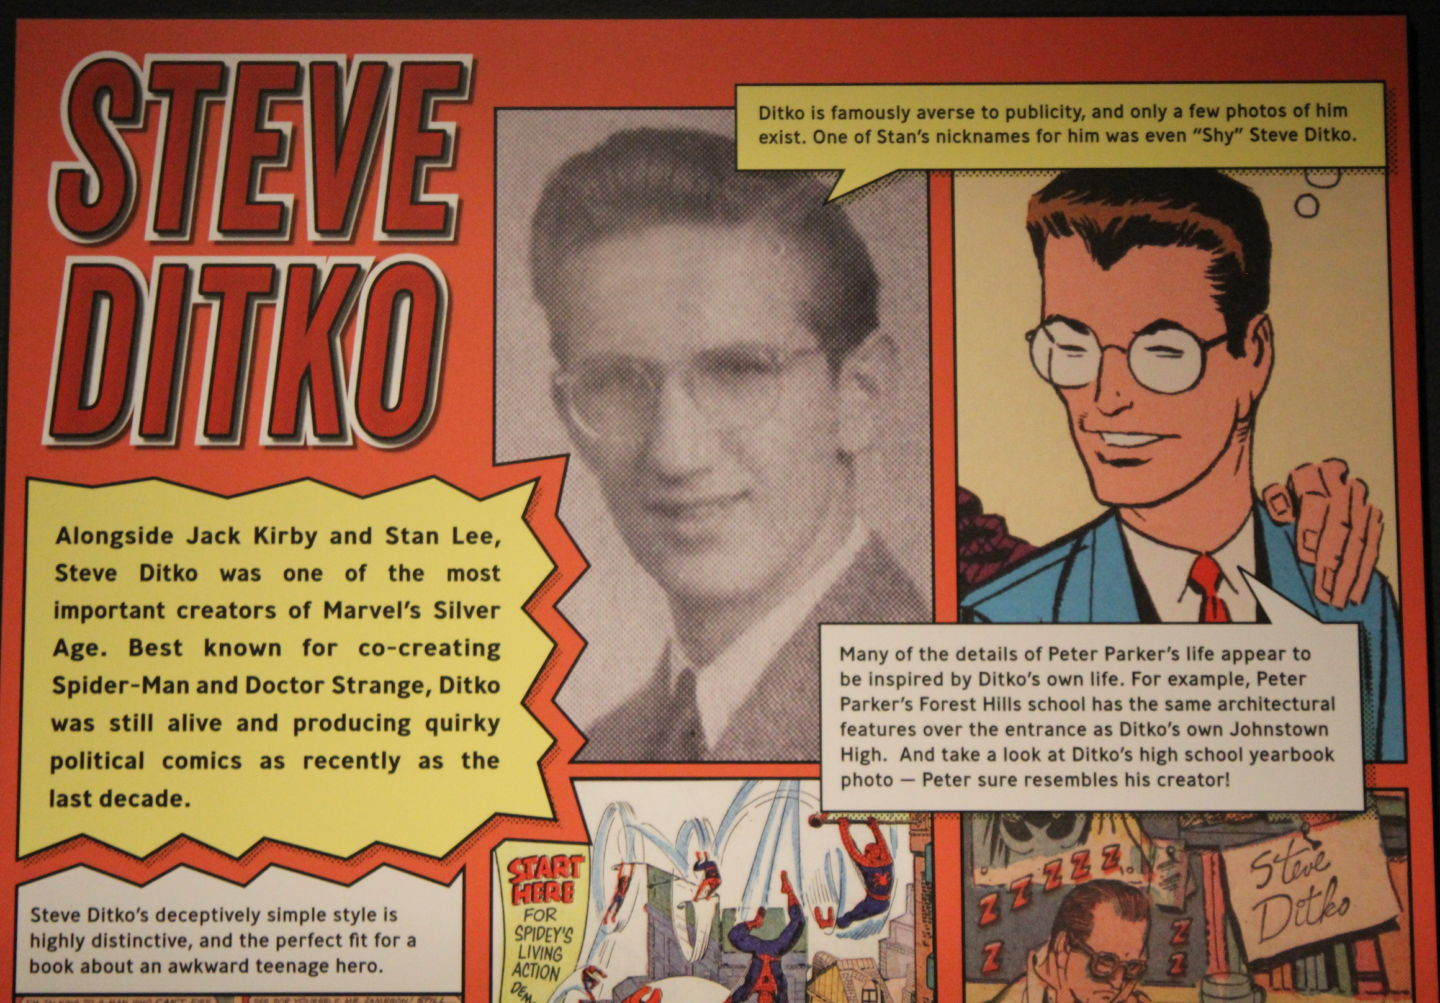 Marvel Comics Related Museum Exhibit In The World Currently Running In Seattle Wa Steve Ditkos Presence Is Limited By His Famously Reclusive Nature